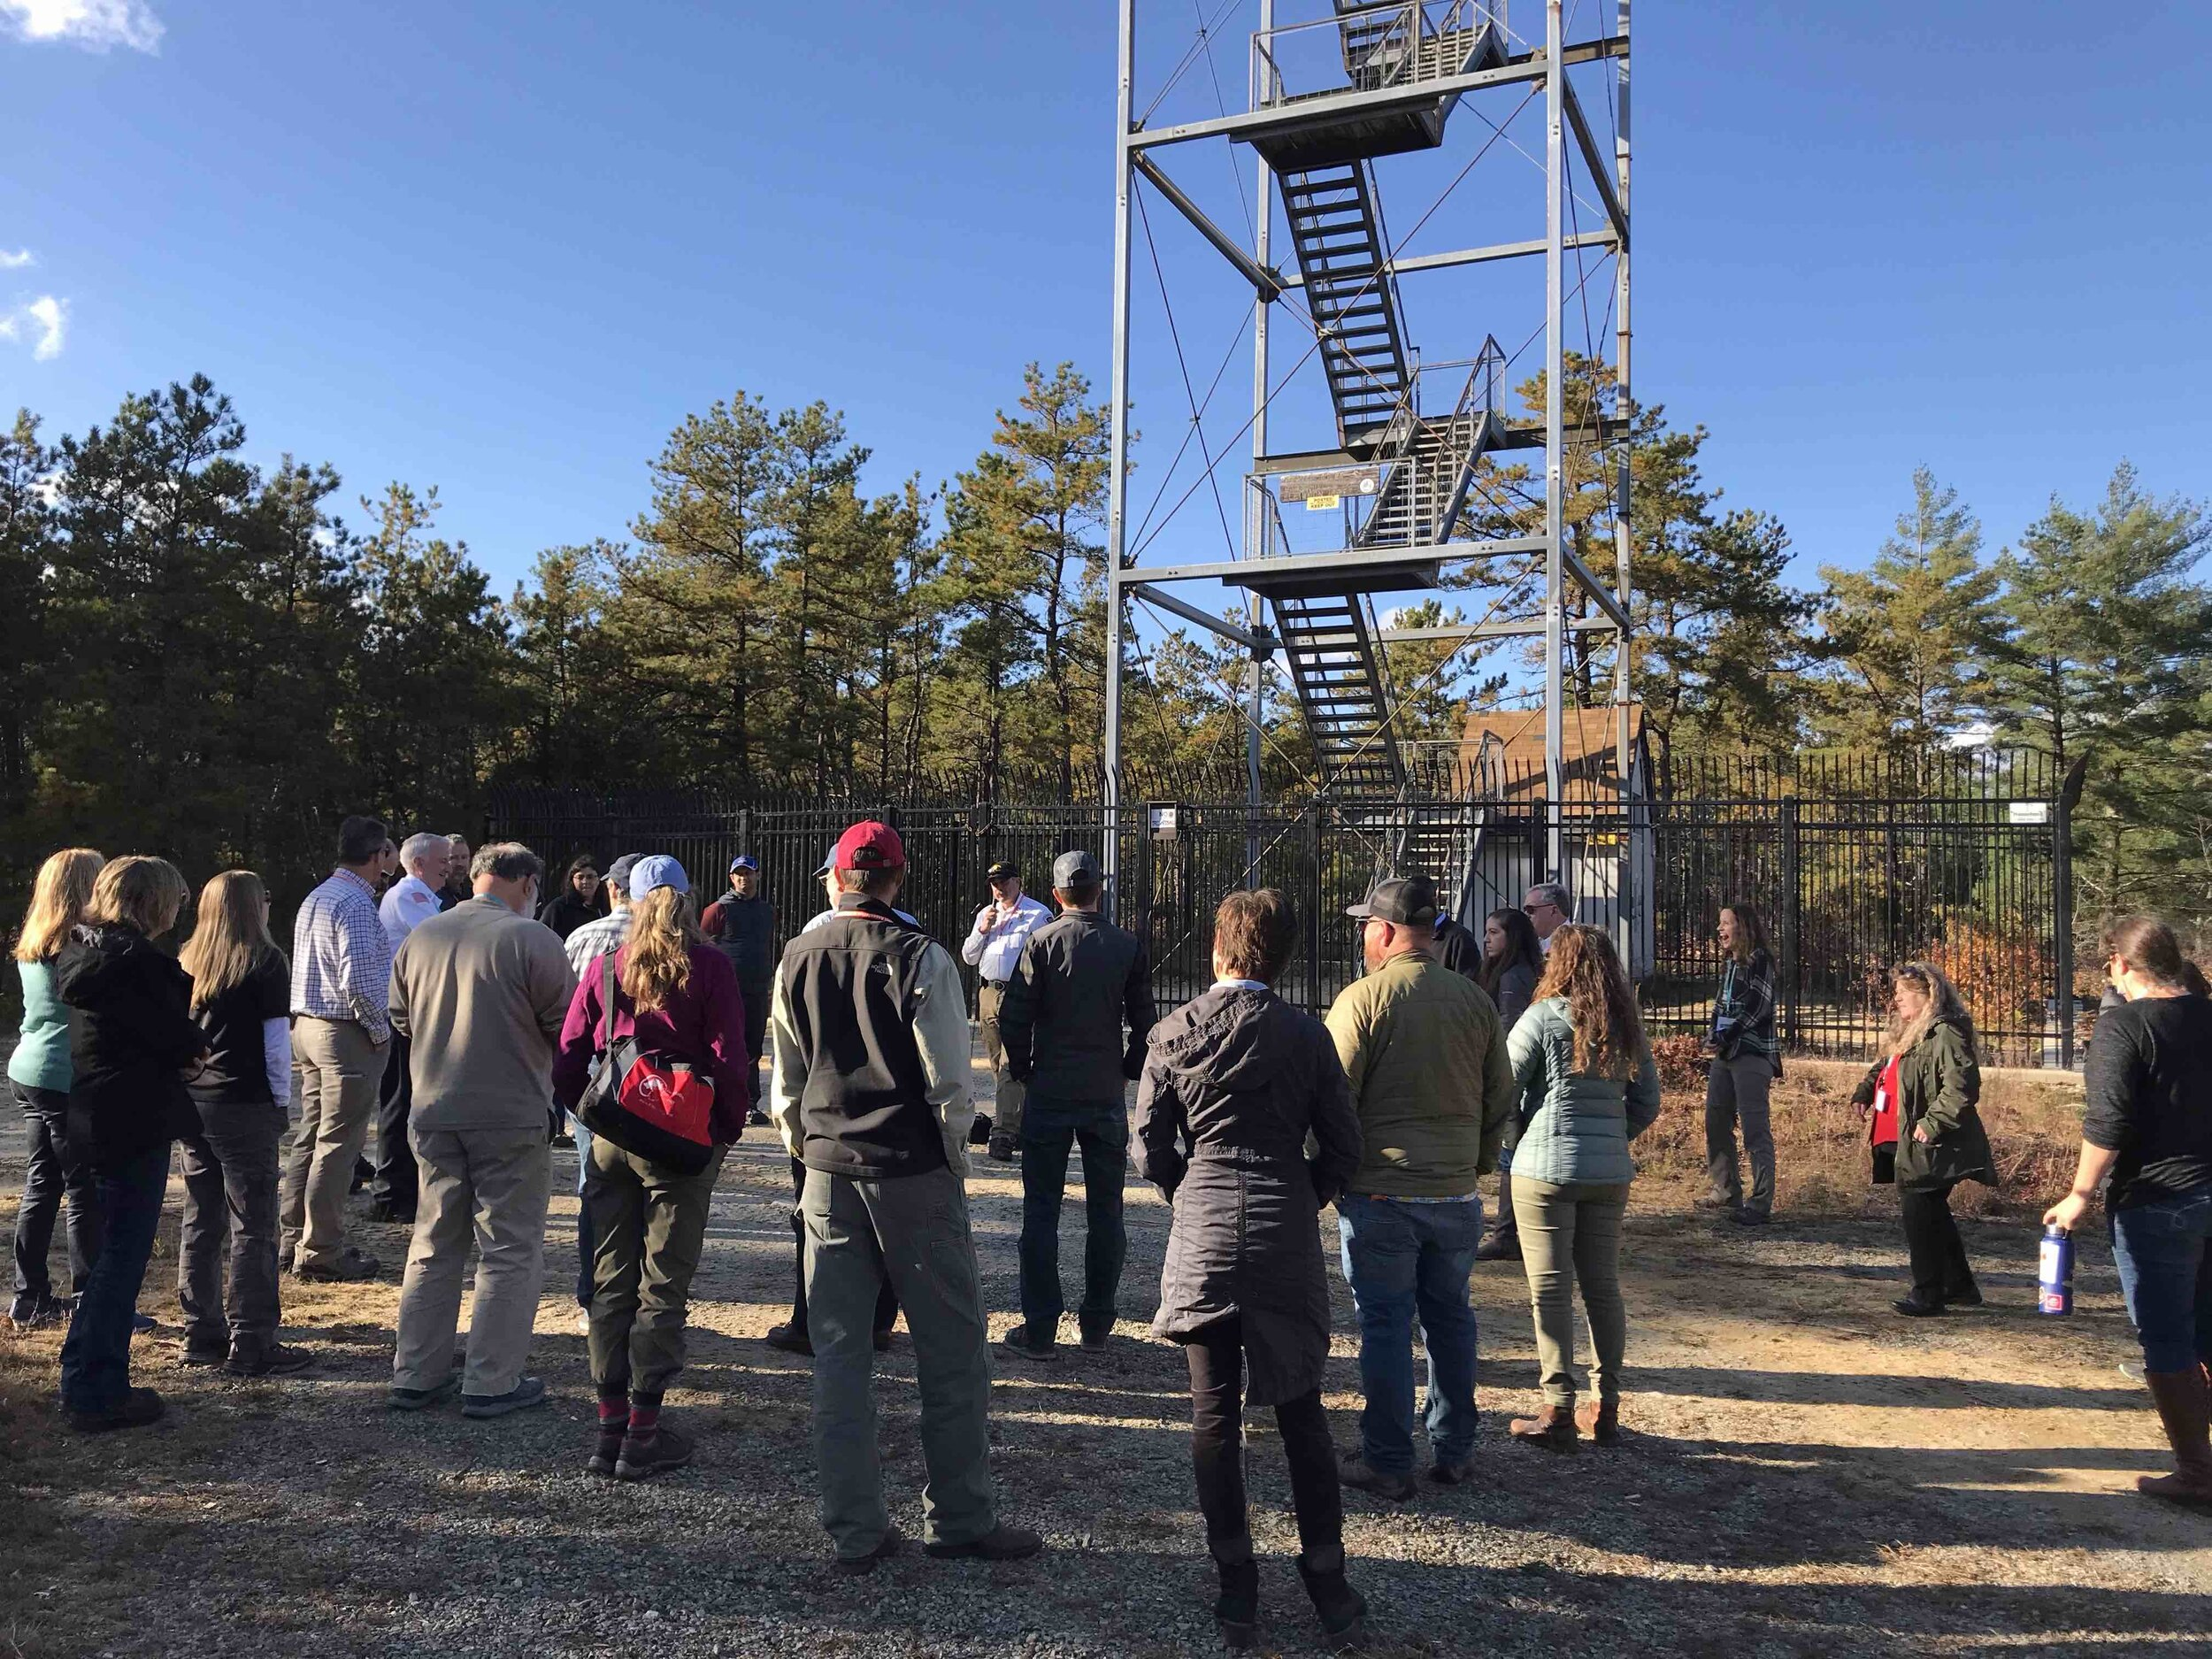 Wildfire lookout towers are still in use throughout the state of Massachusetts today. This was one of the stops on an information-packed field trip into the Myles Standish State Park.